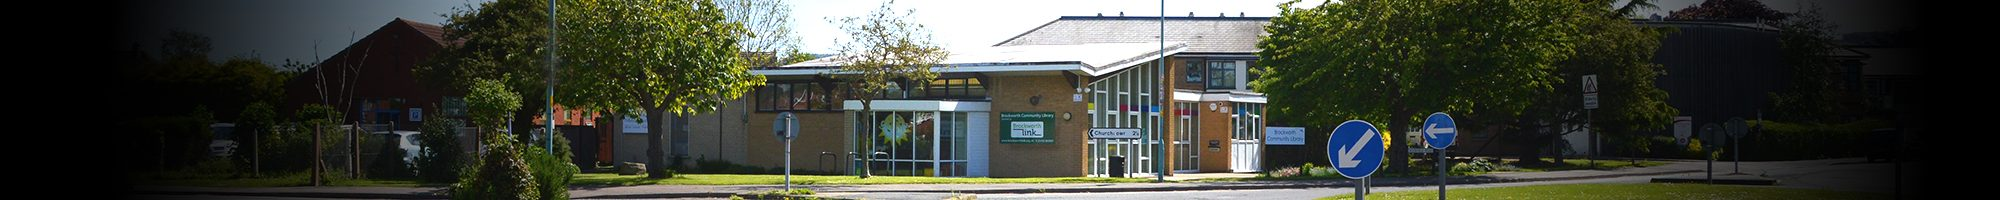 Brockworth Link & Community Library